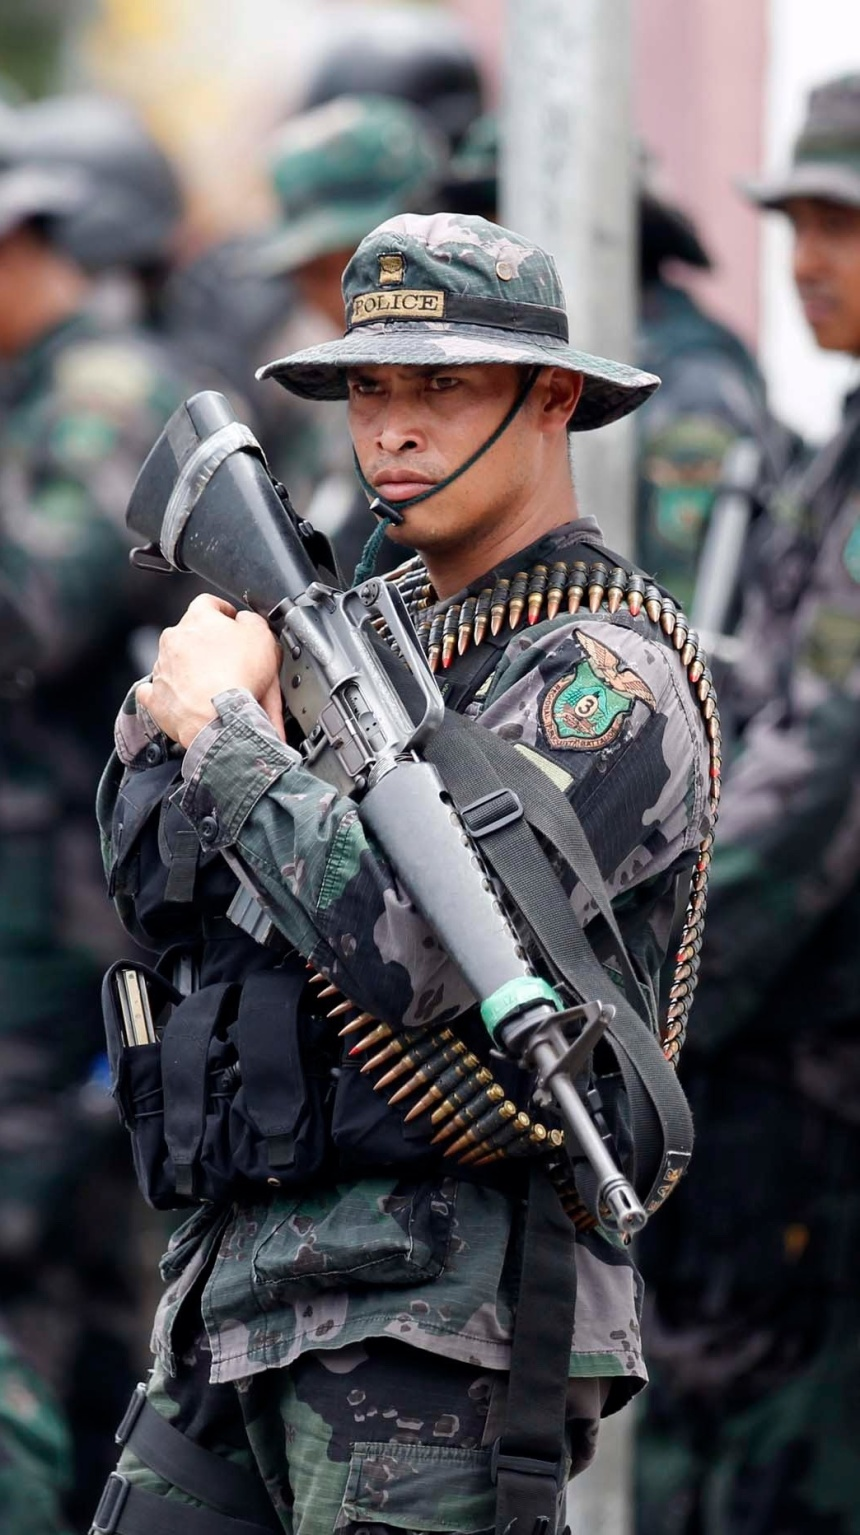 phillipines special police with m16a1 in 2015 m-16